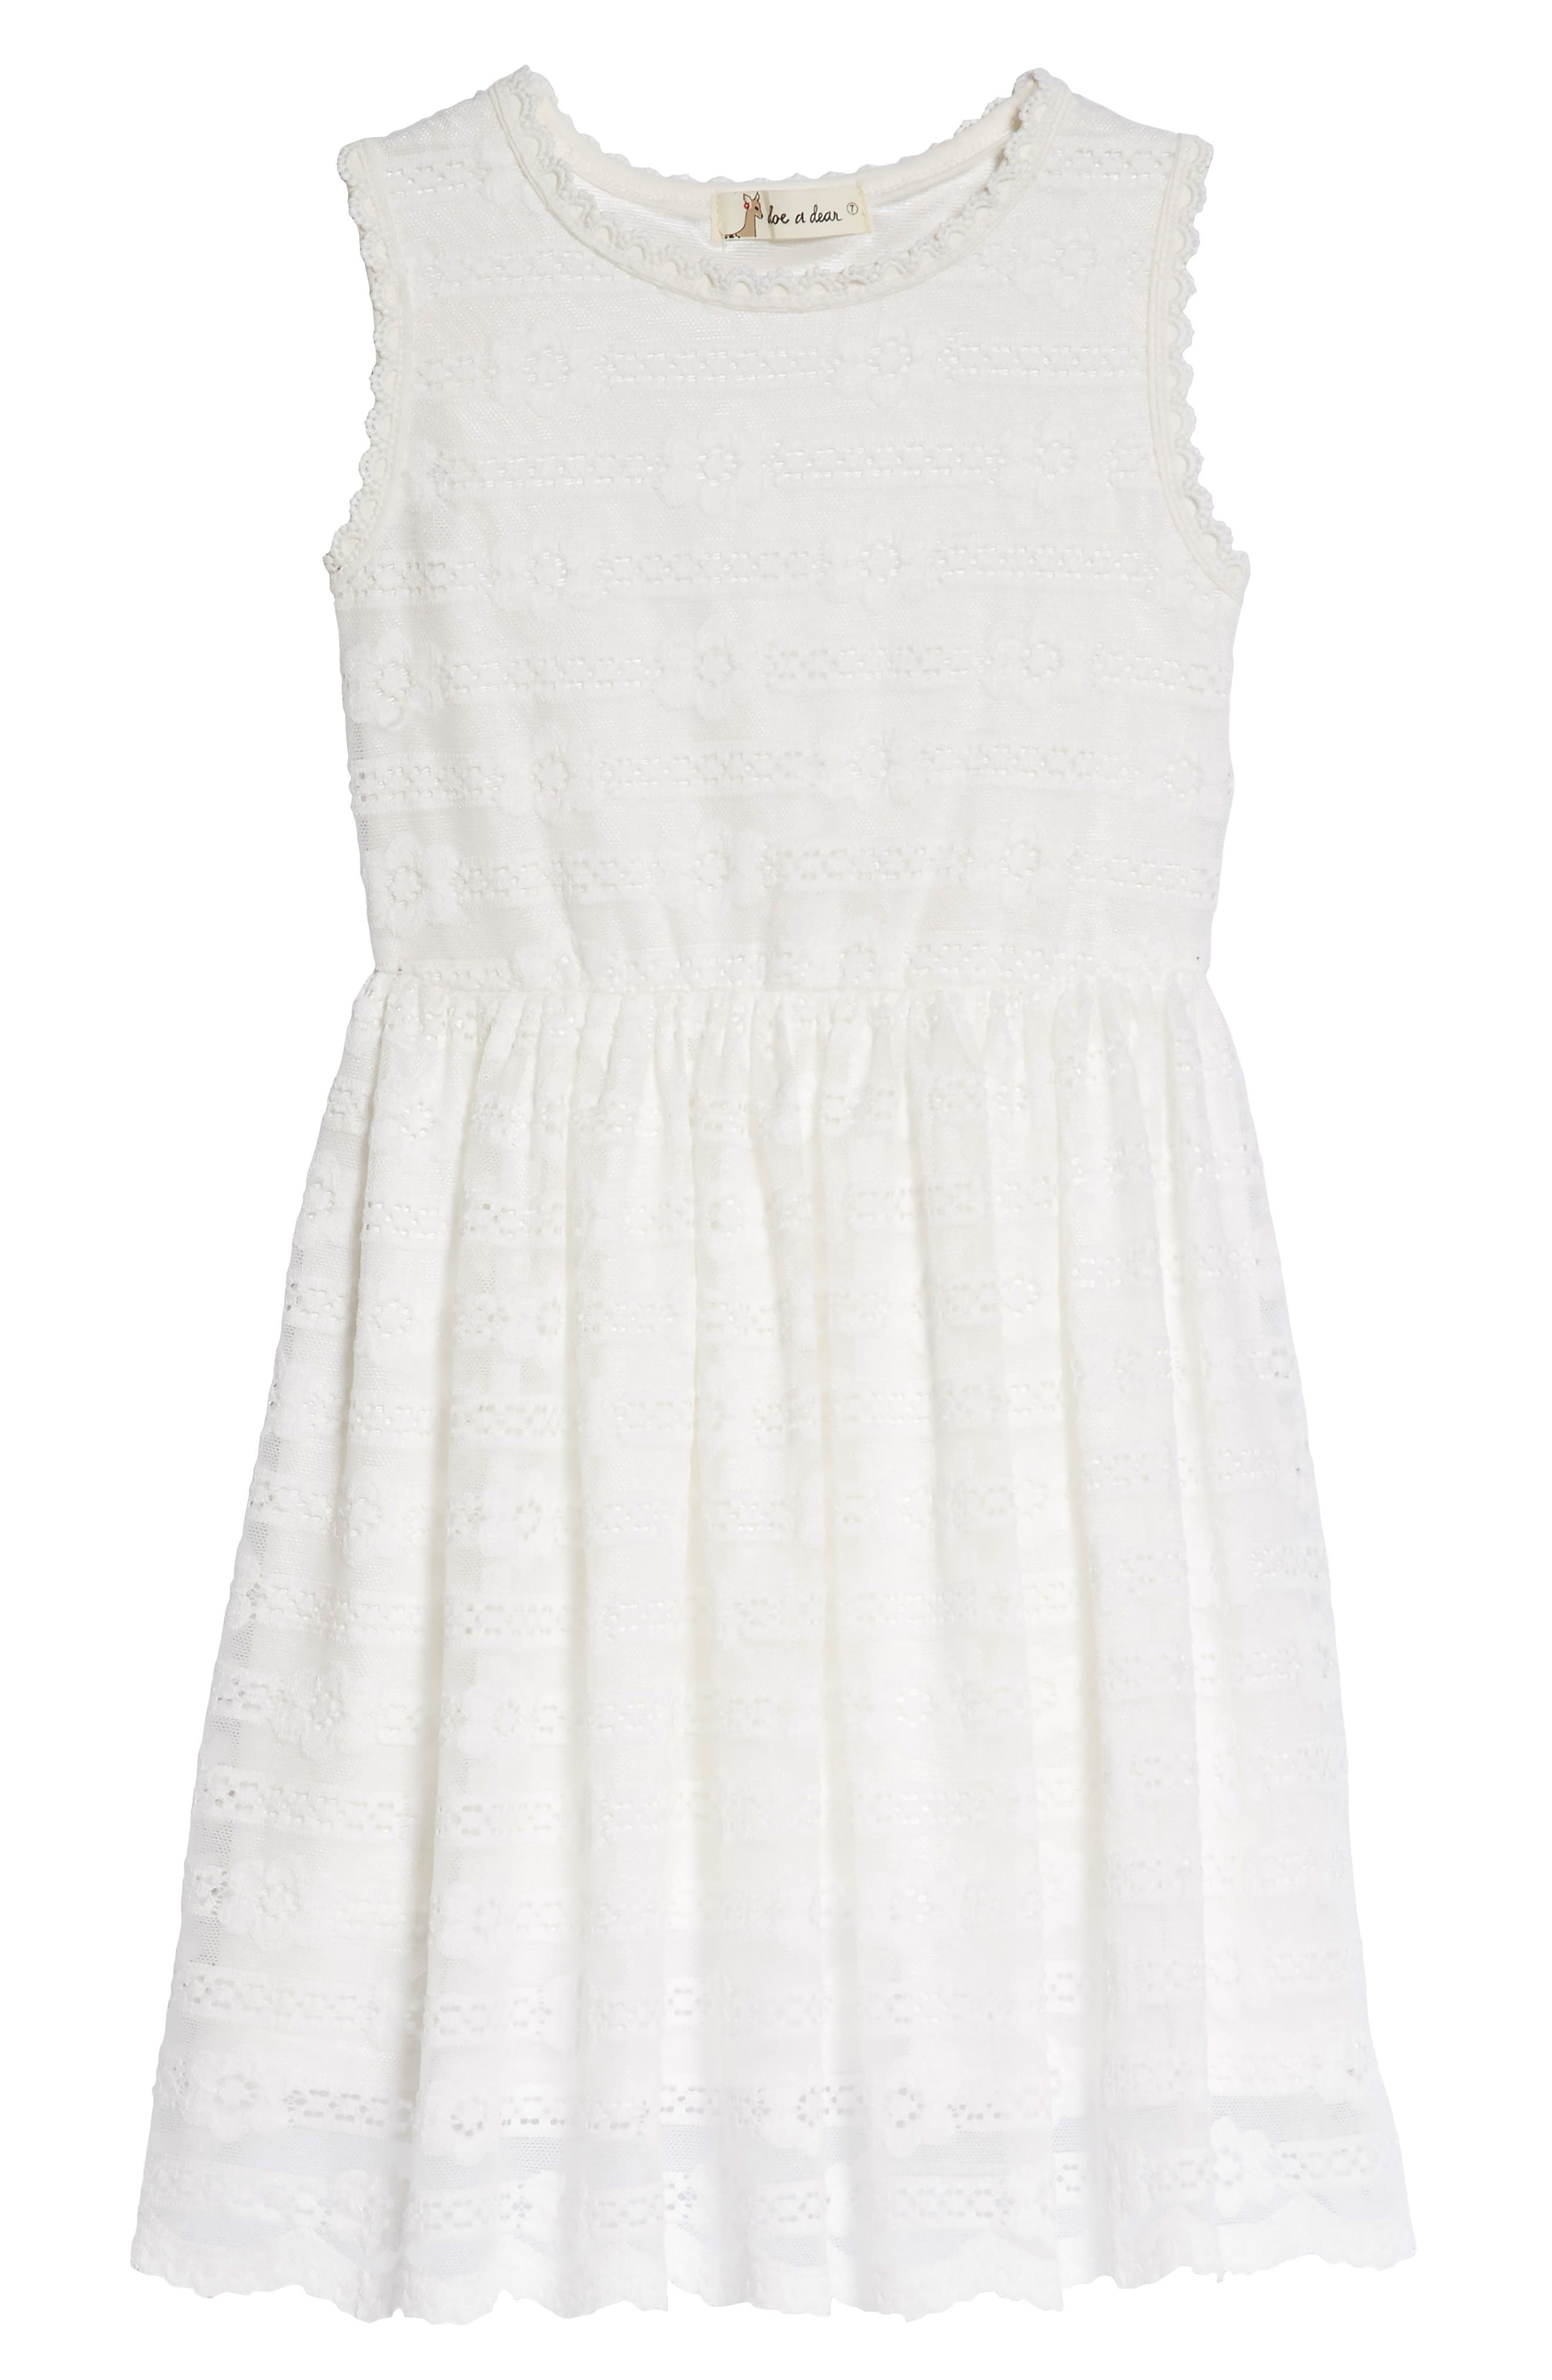 Lace Fit & Flare Dress,                             Main thumbnail 1, color,                             White